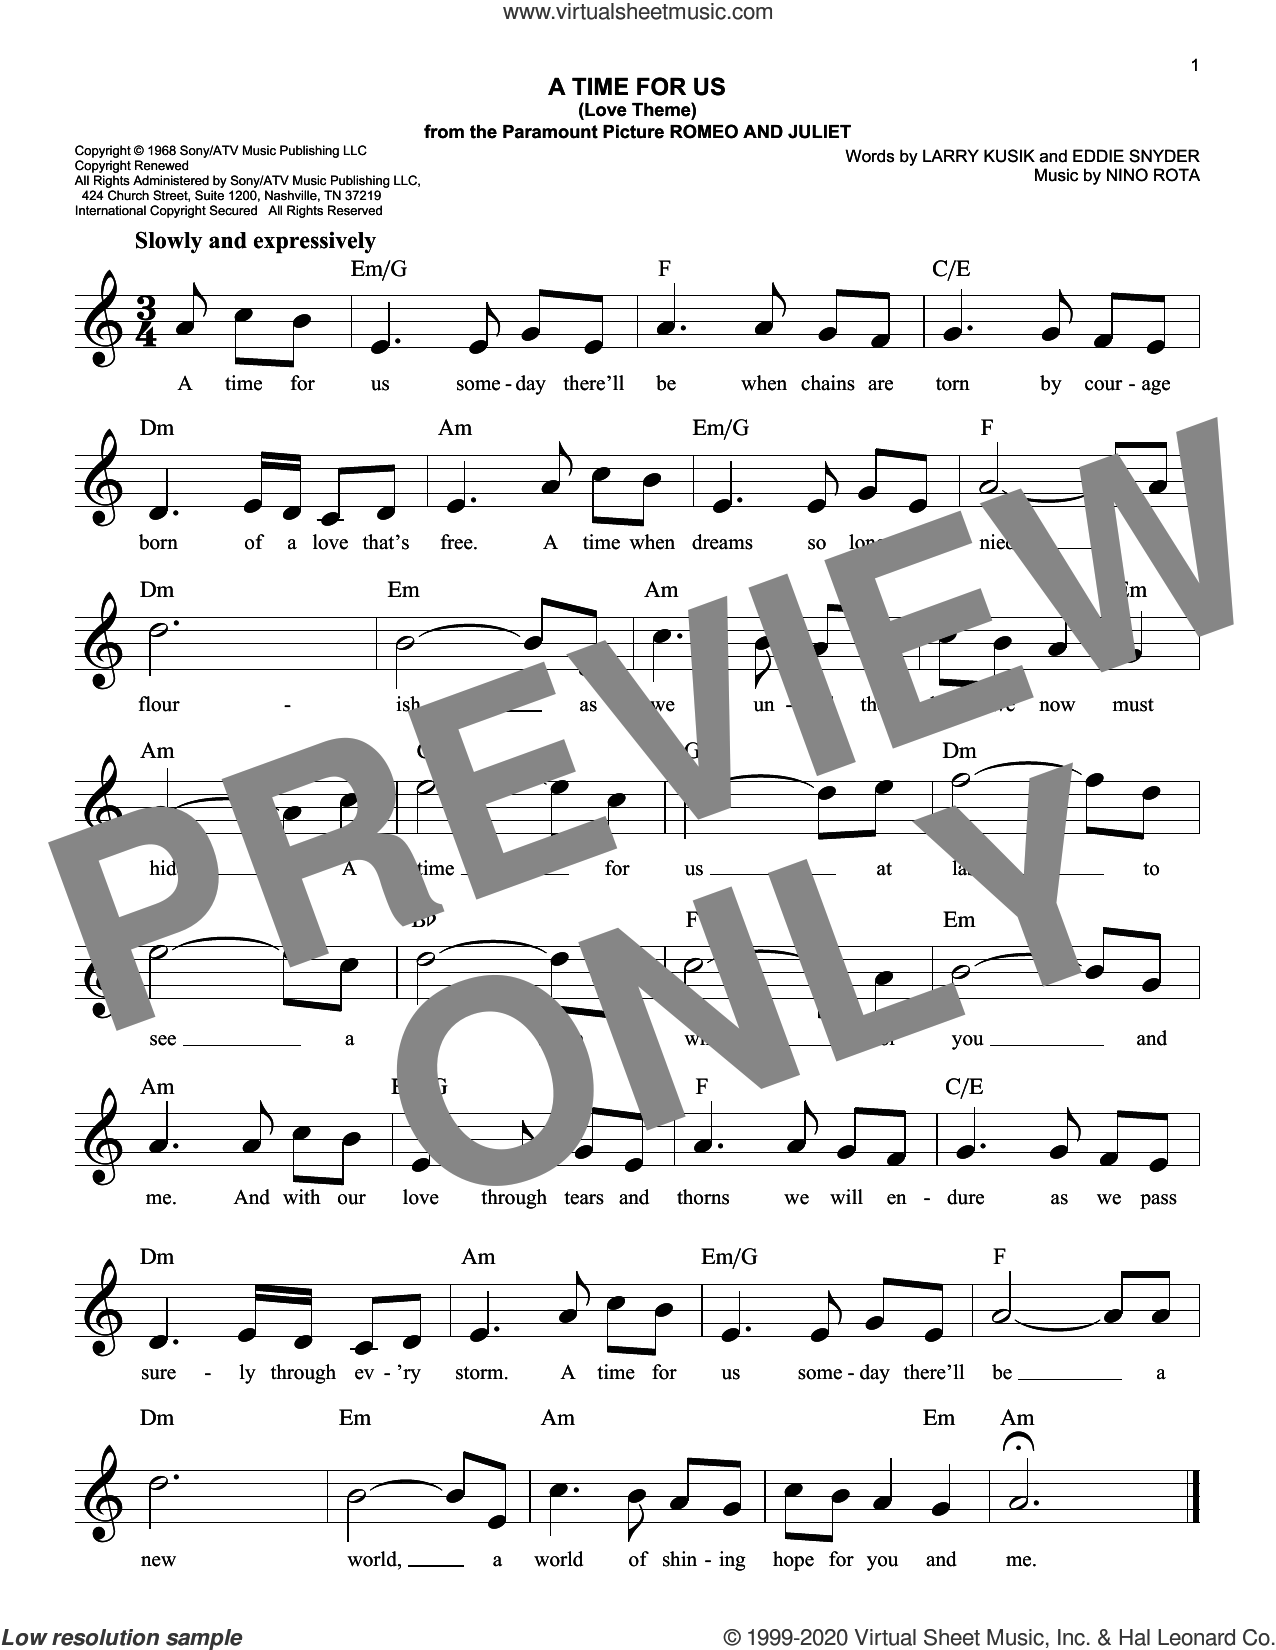 A Time For Us (Love Theme from Romeo And Juliet) sheet music for voice and other instruments (fake book) by Nino Rota, Eddie Snyder and Larry Kusik, intermediate skill level